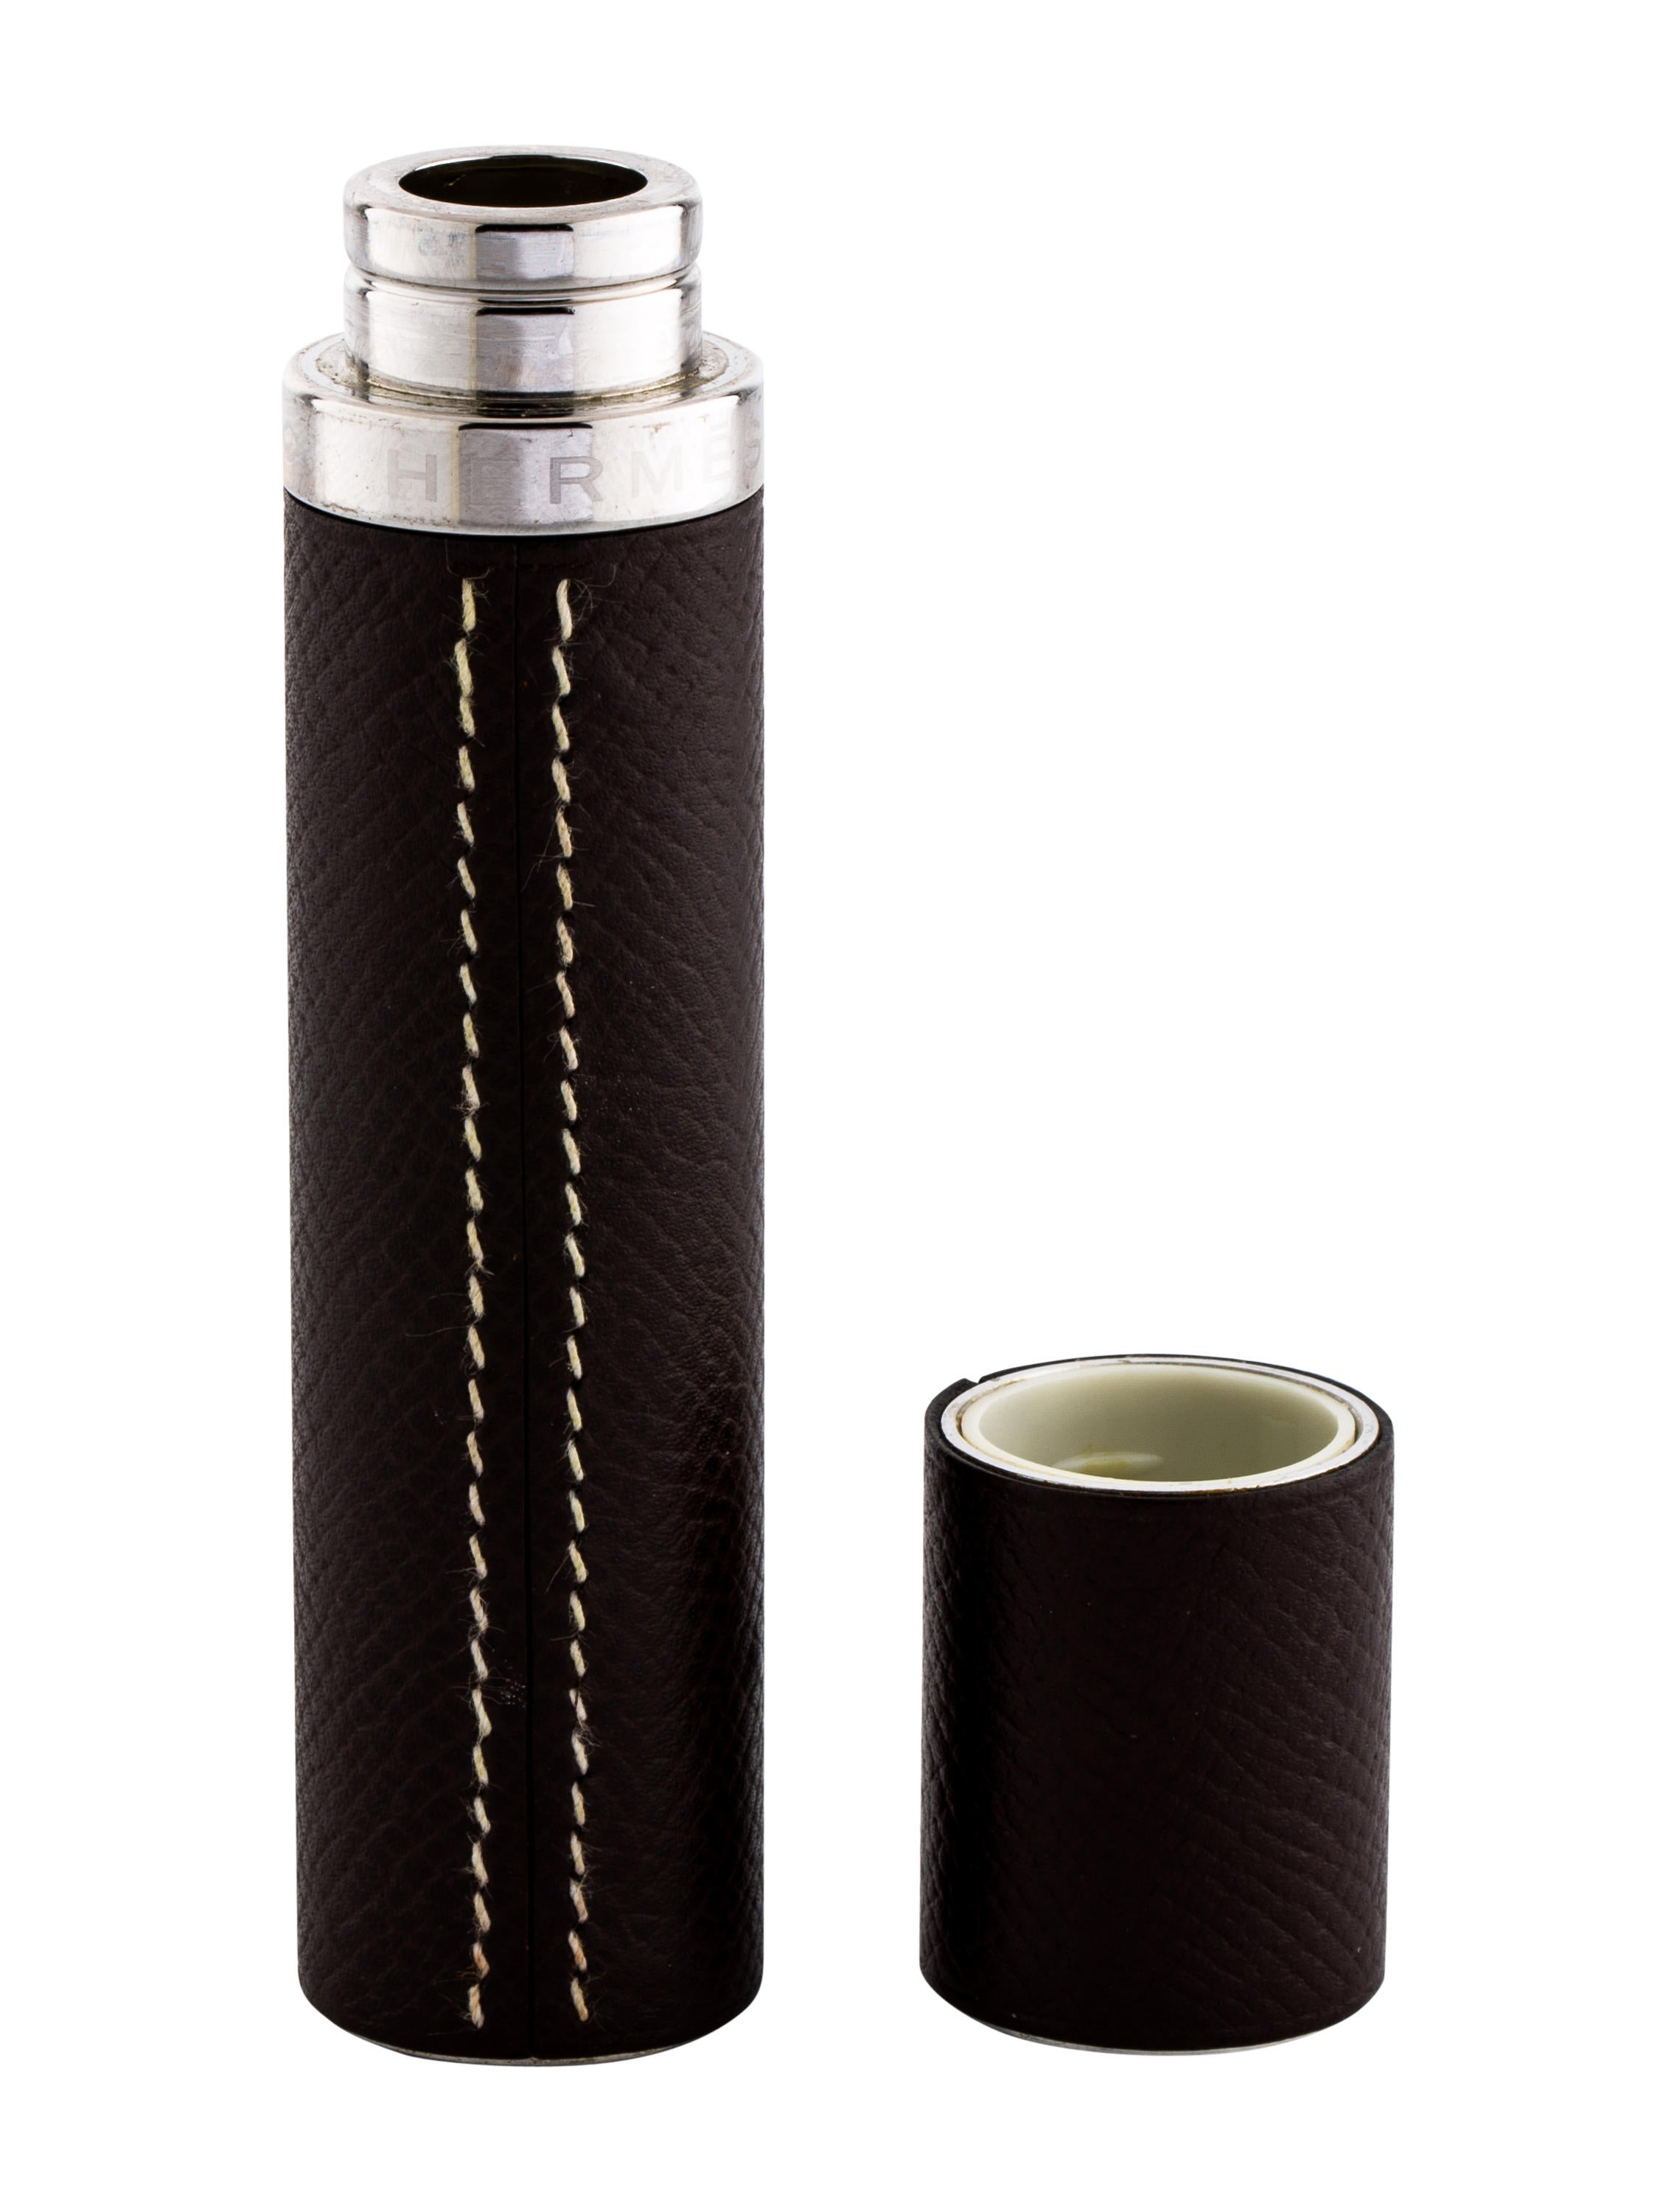 Herm s all lines leather perfume case decor and for All home accessories